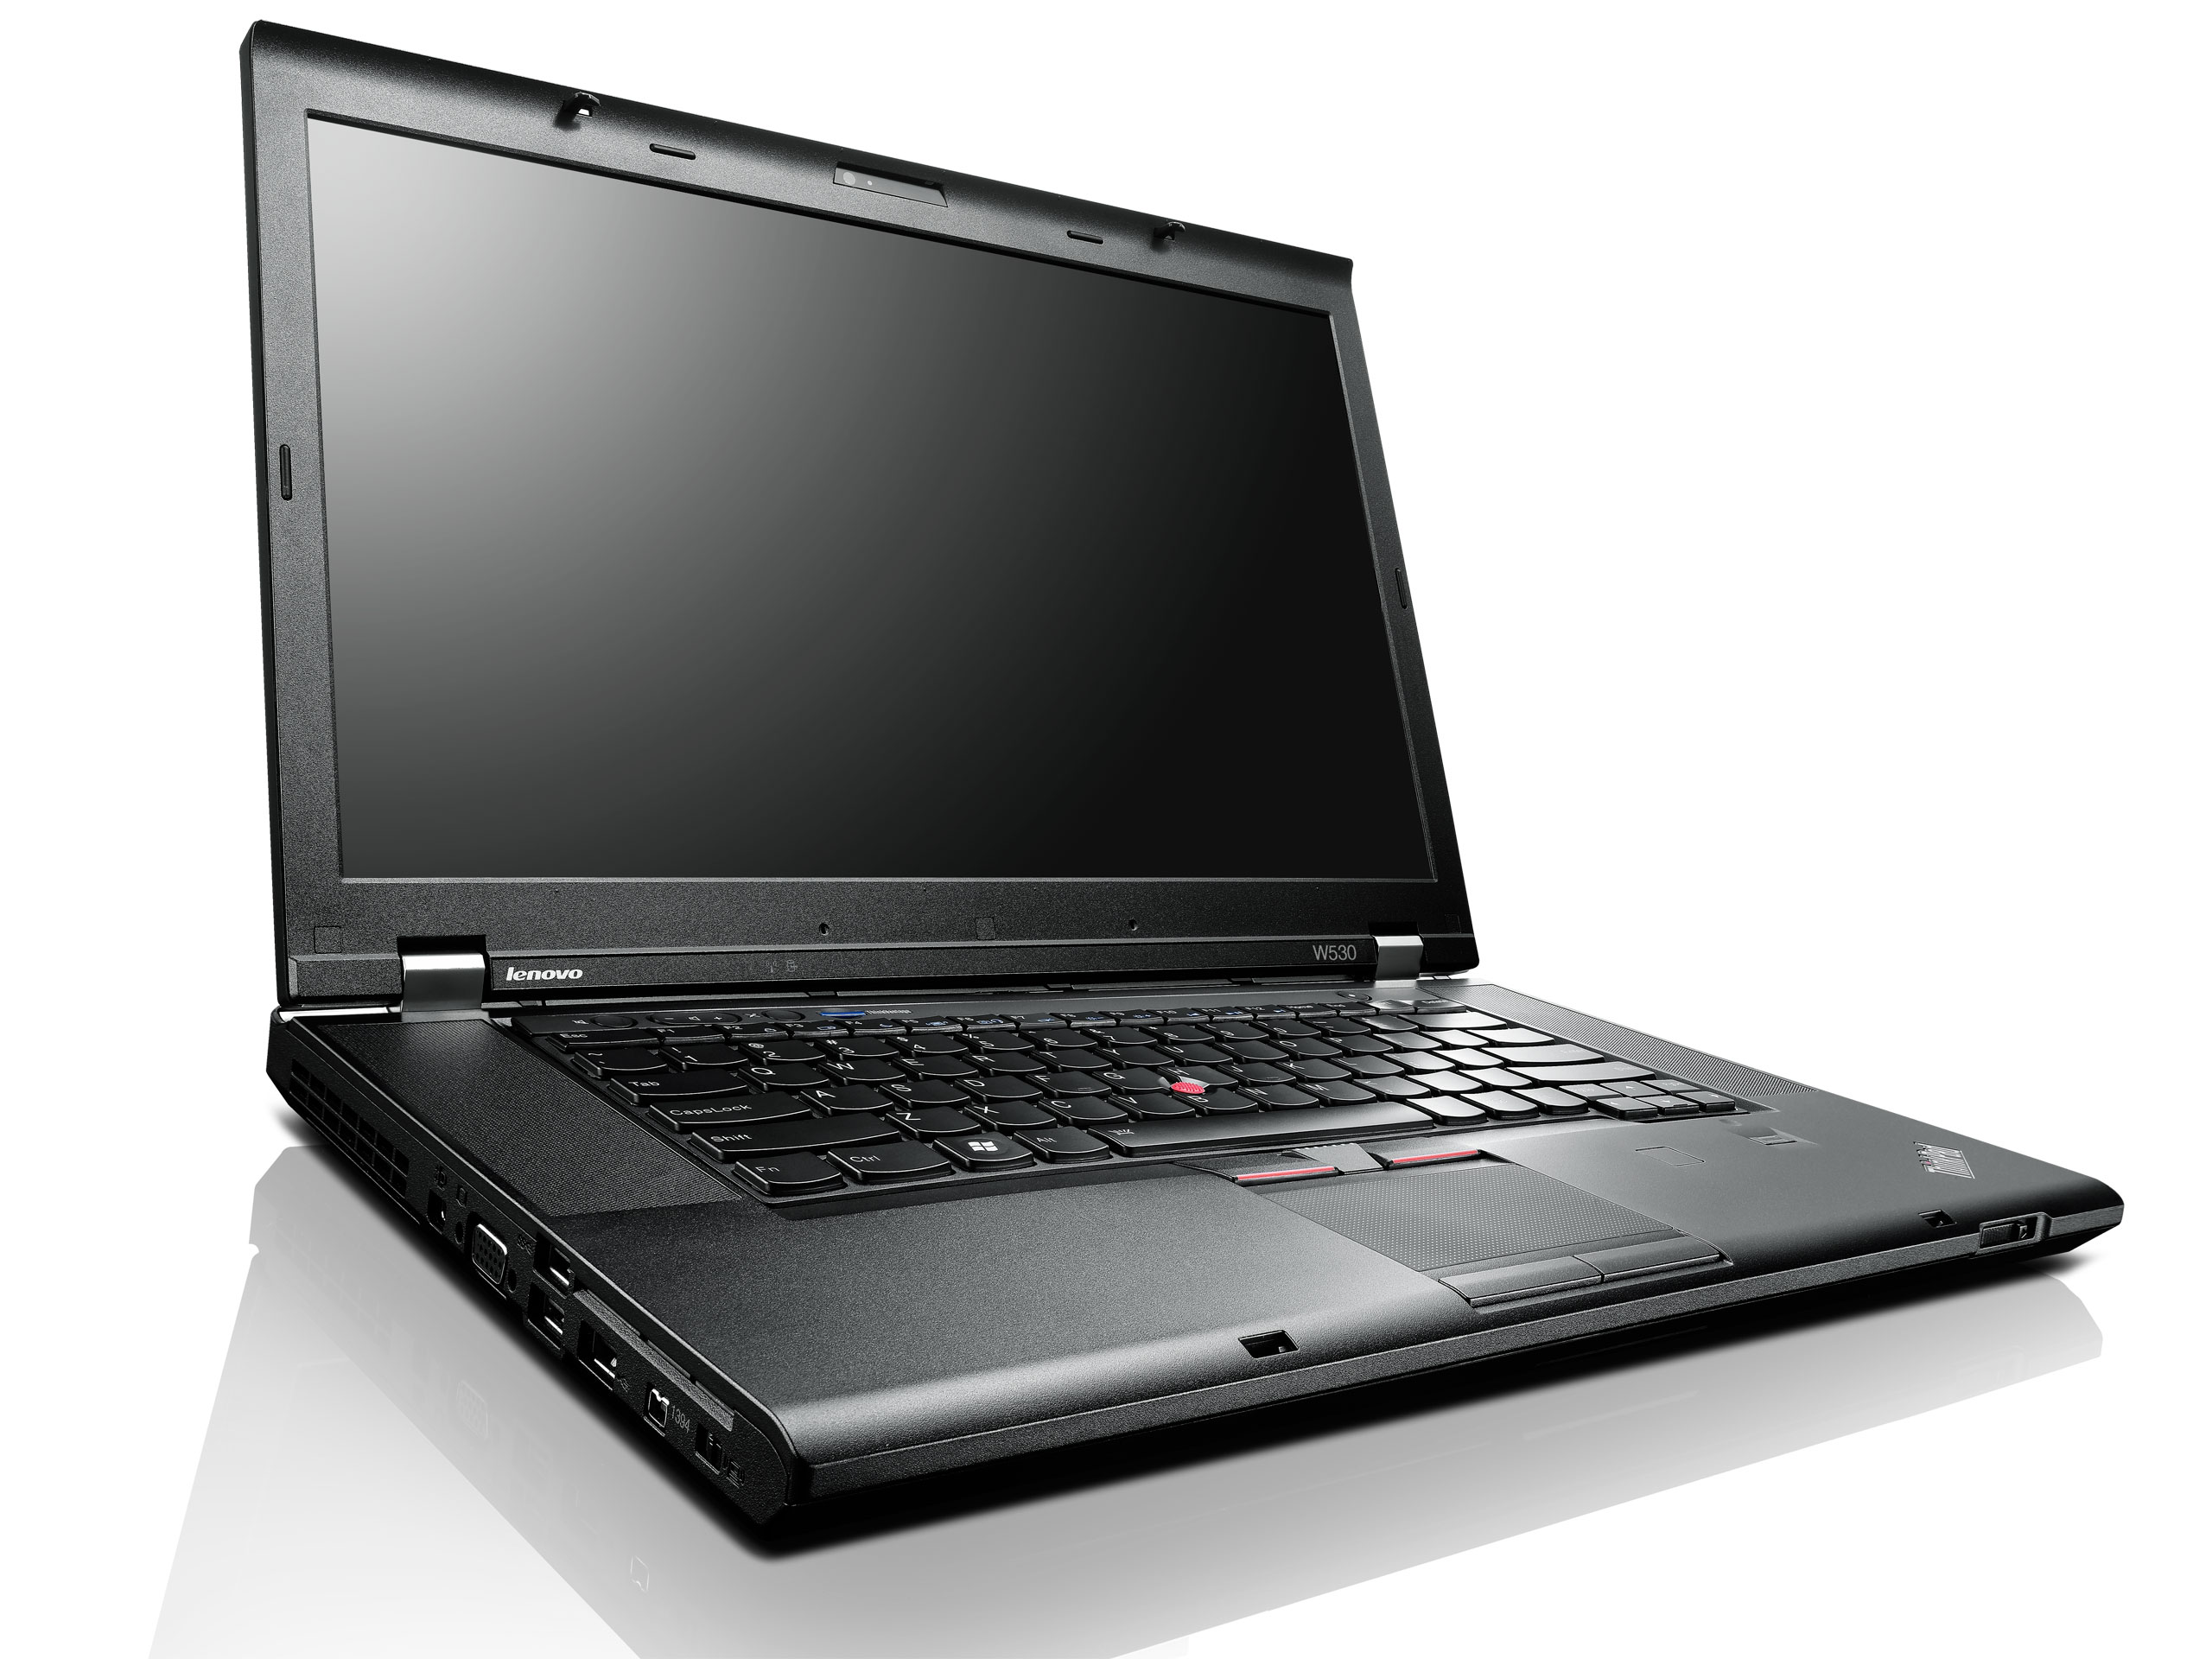 thinkpad-w530 lenovo